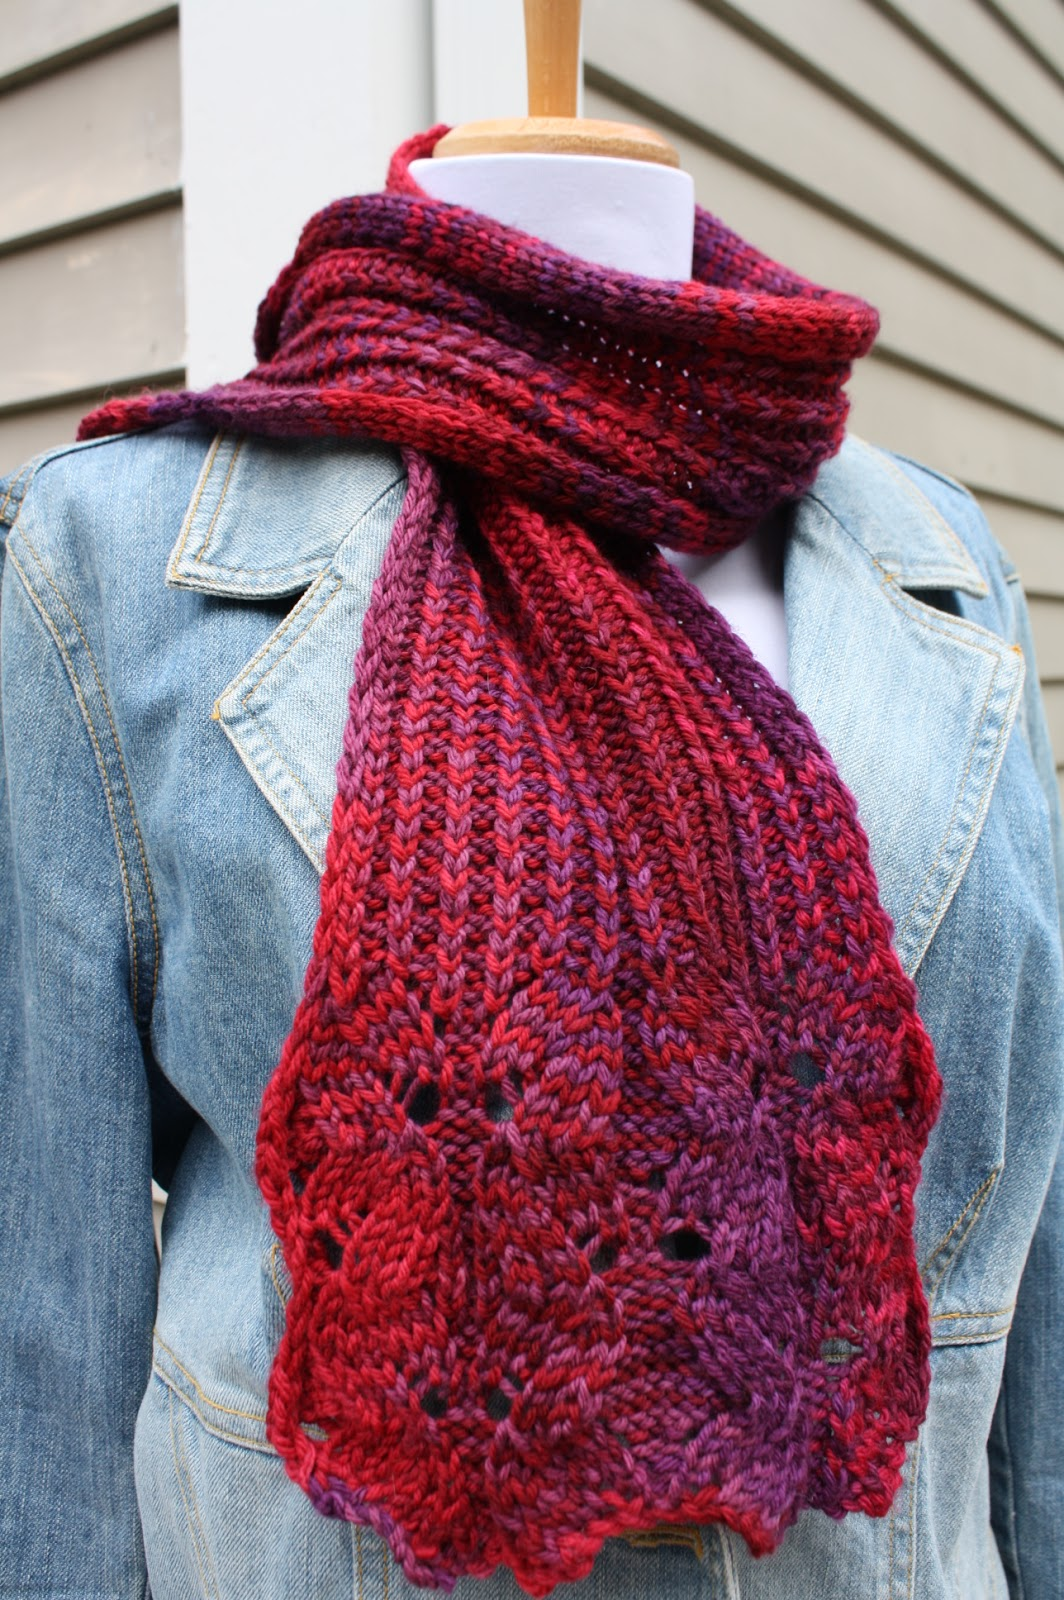 Knitting Pattern Scarf 6mm Needles : All Knitted Lace: Free Guide to Knitting Needles